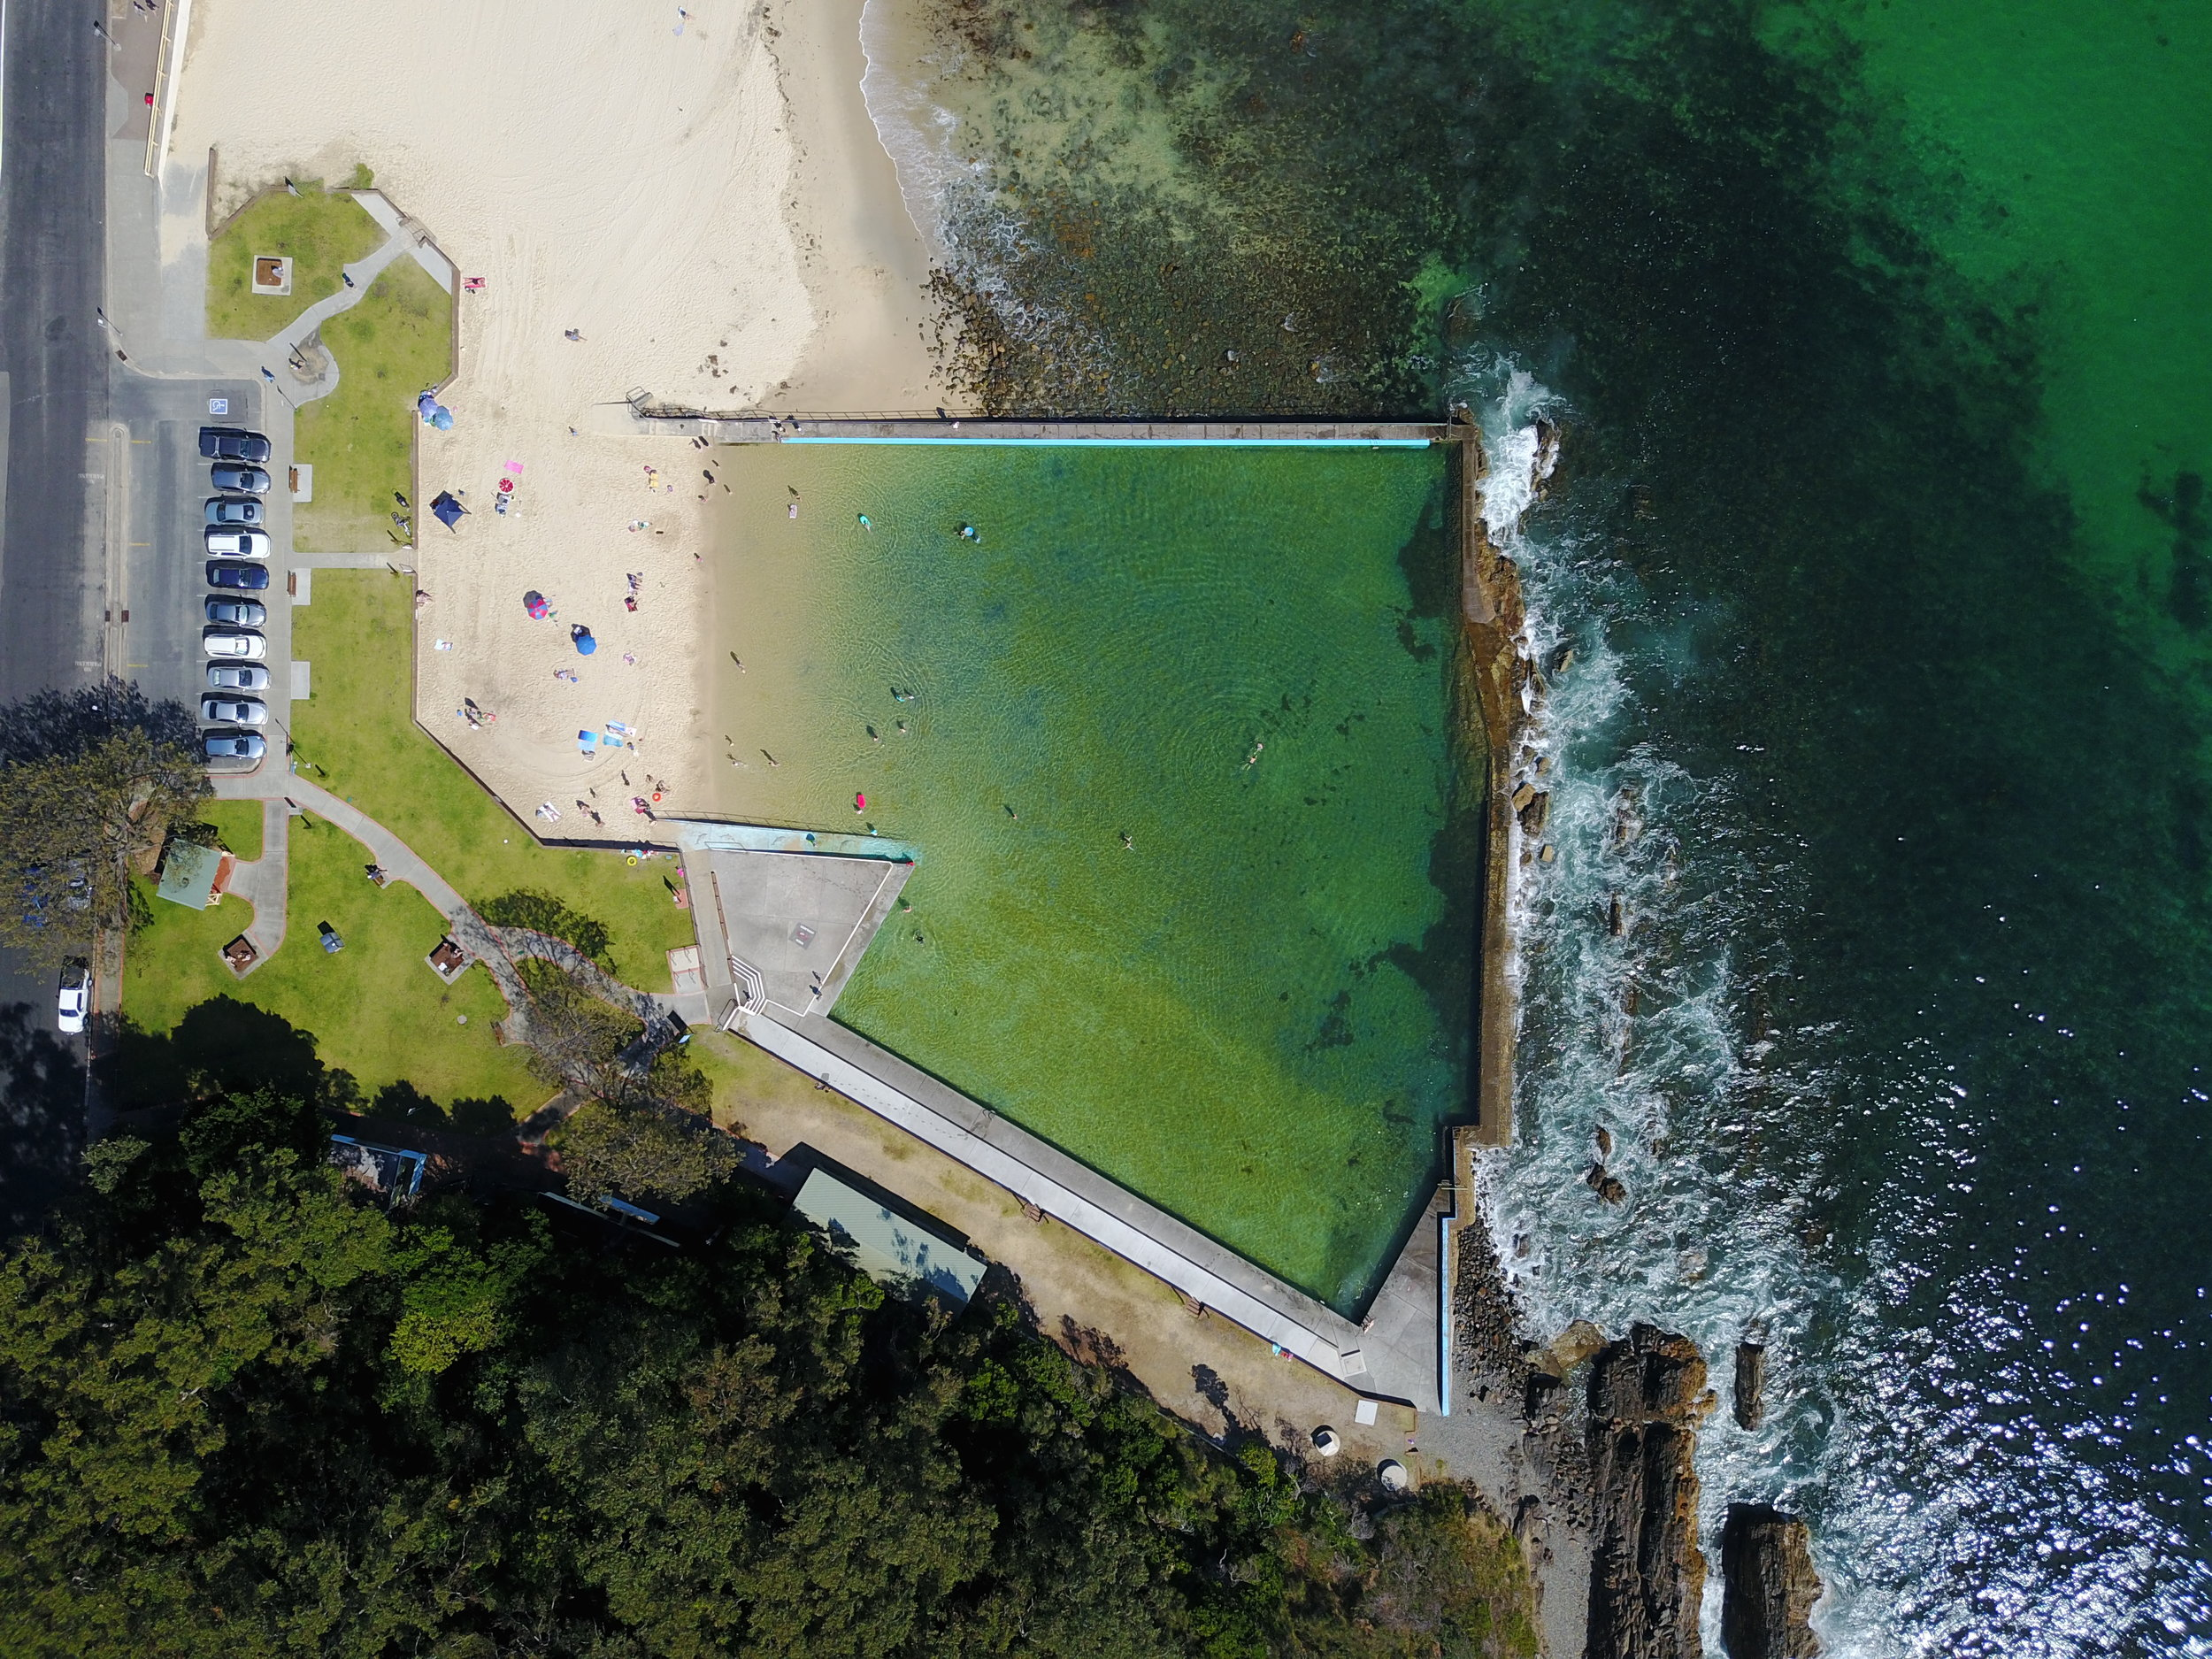 forster - forster ocean baths, nsw